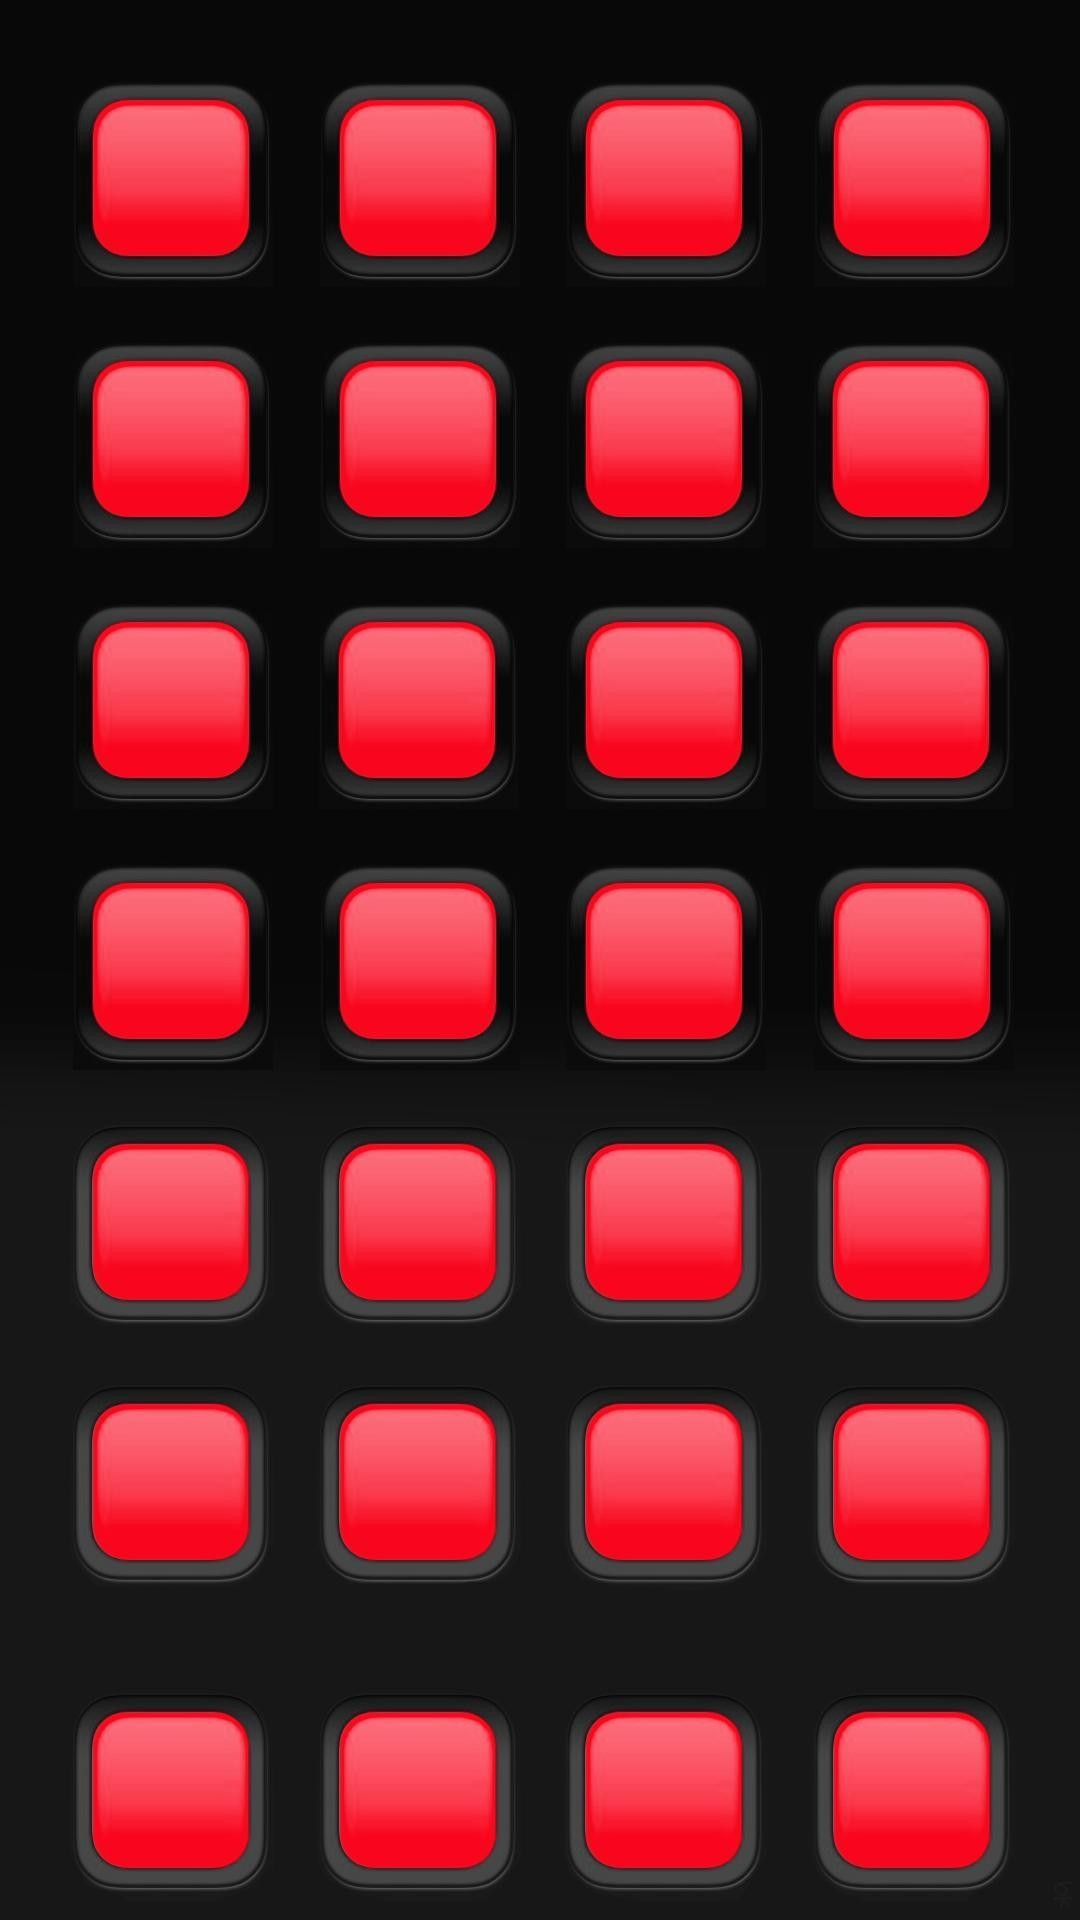 Black and Red iPhone Wallpaper 67 images 1080x1920